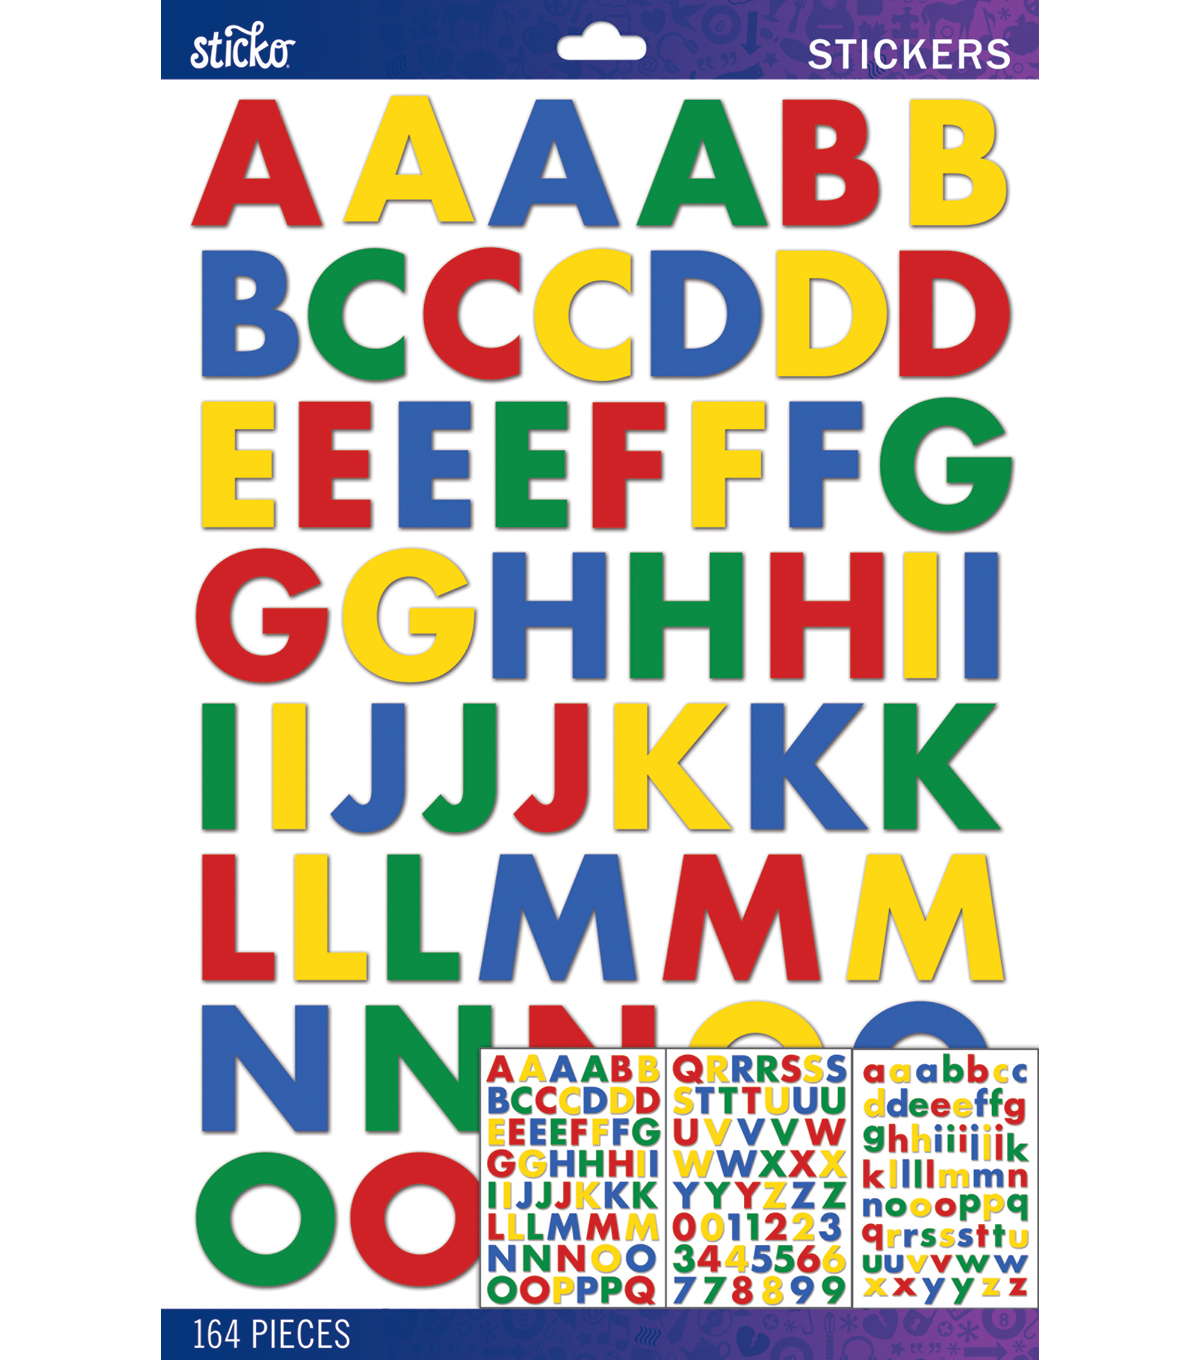 Sticko Black Futura Bold Alphabet Sticker Large, Primary